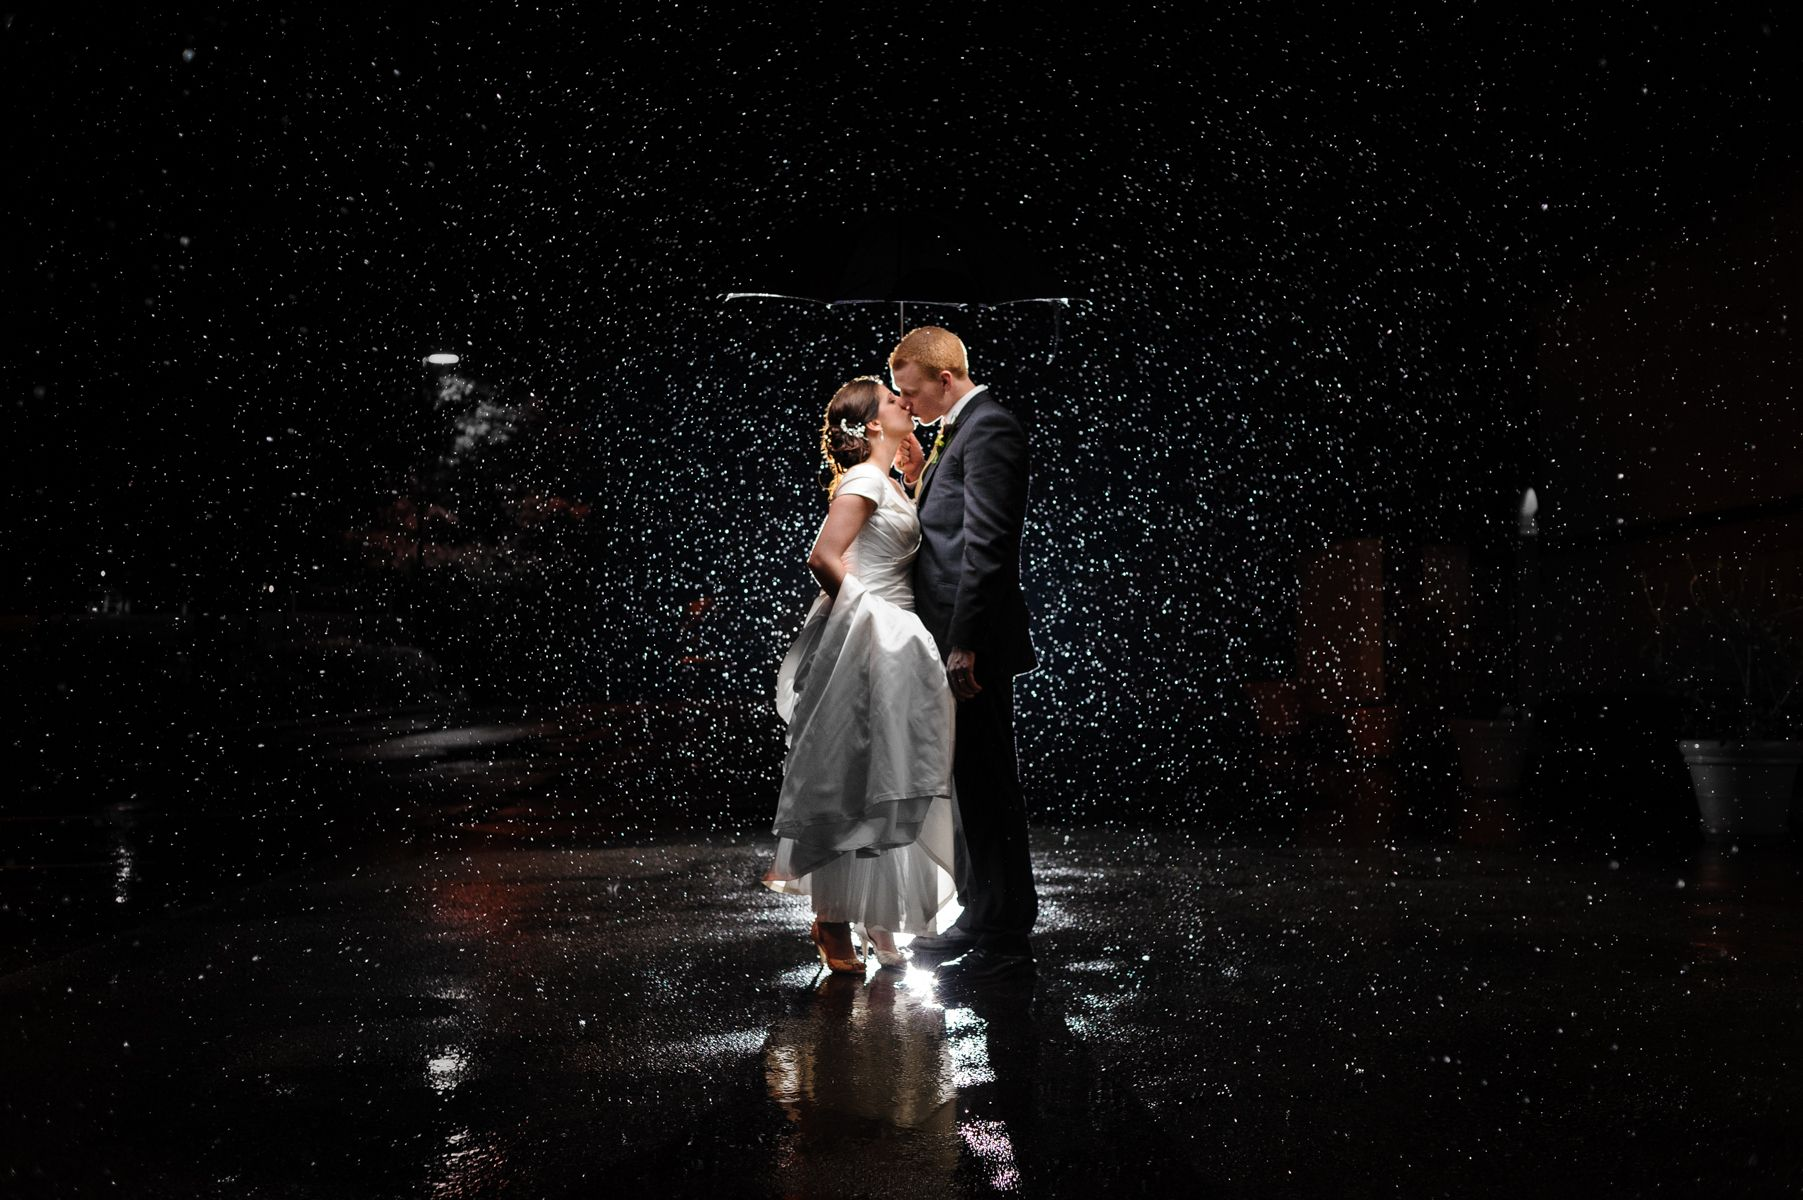 Bride and groom in the rain at night.